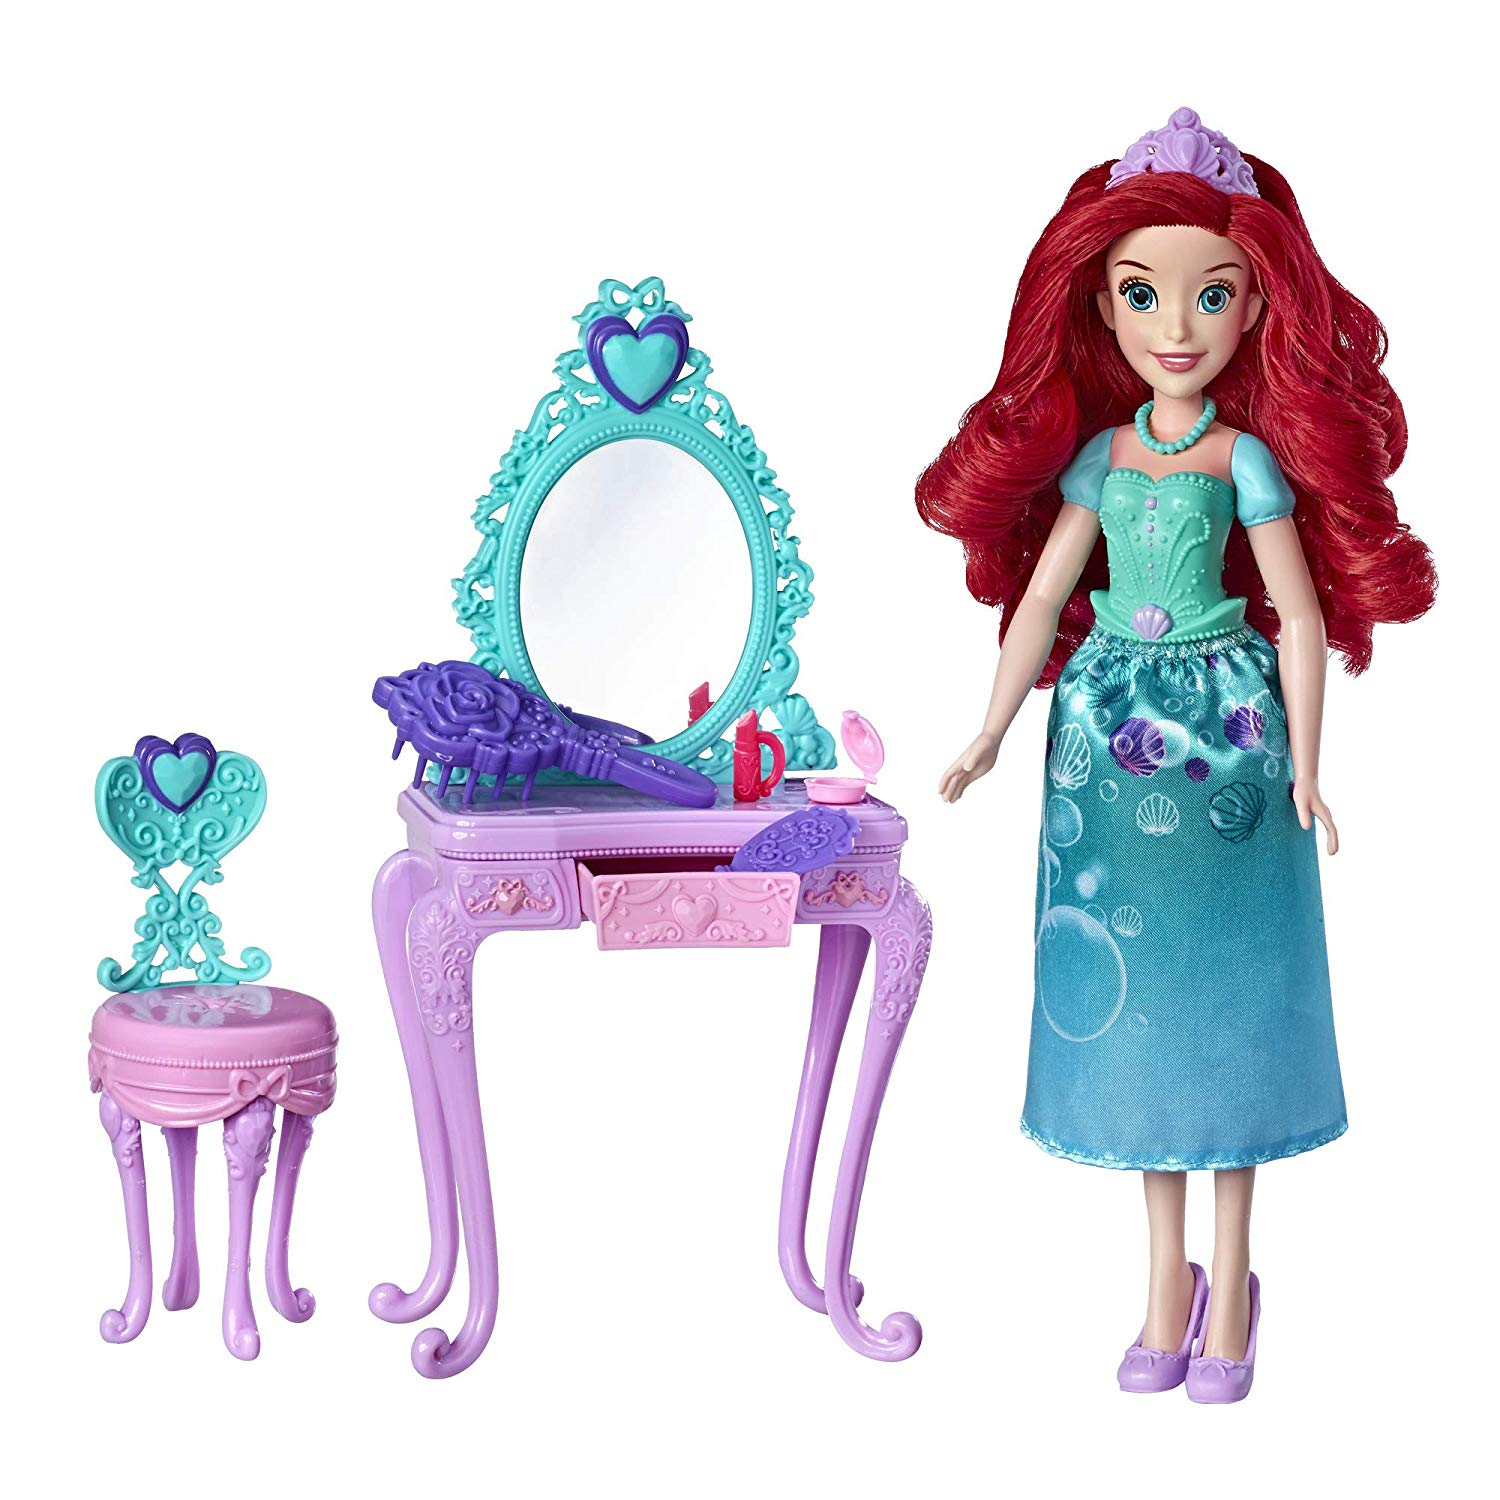 2019 Disney Princess Dolls From Hasbro Shimmering Song